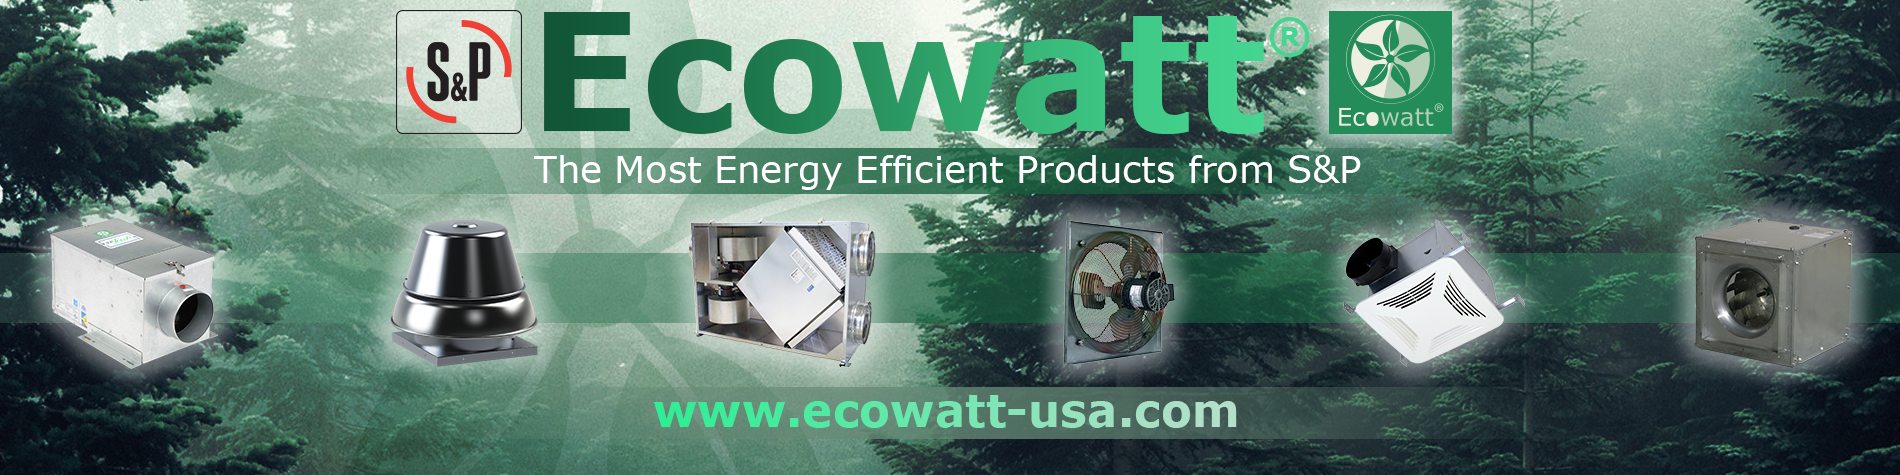 Ecowatt: The Most Efficient Products from S&P